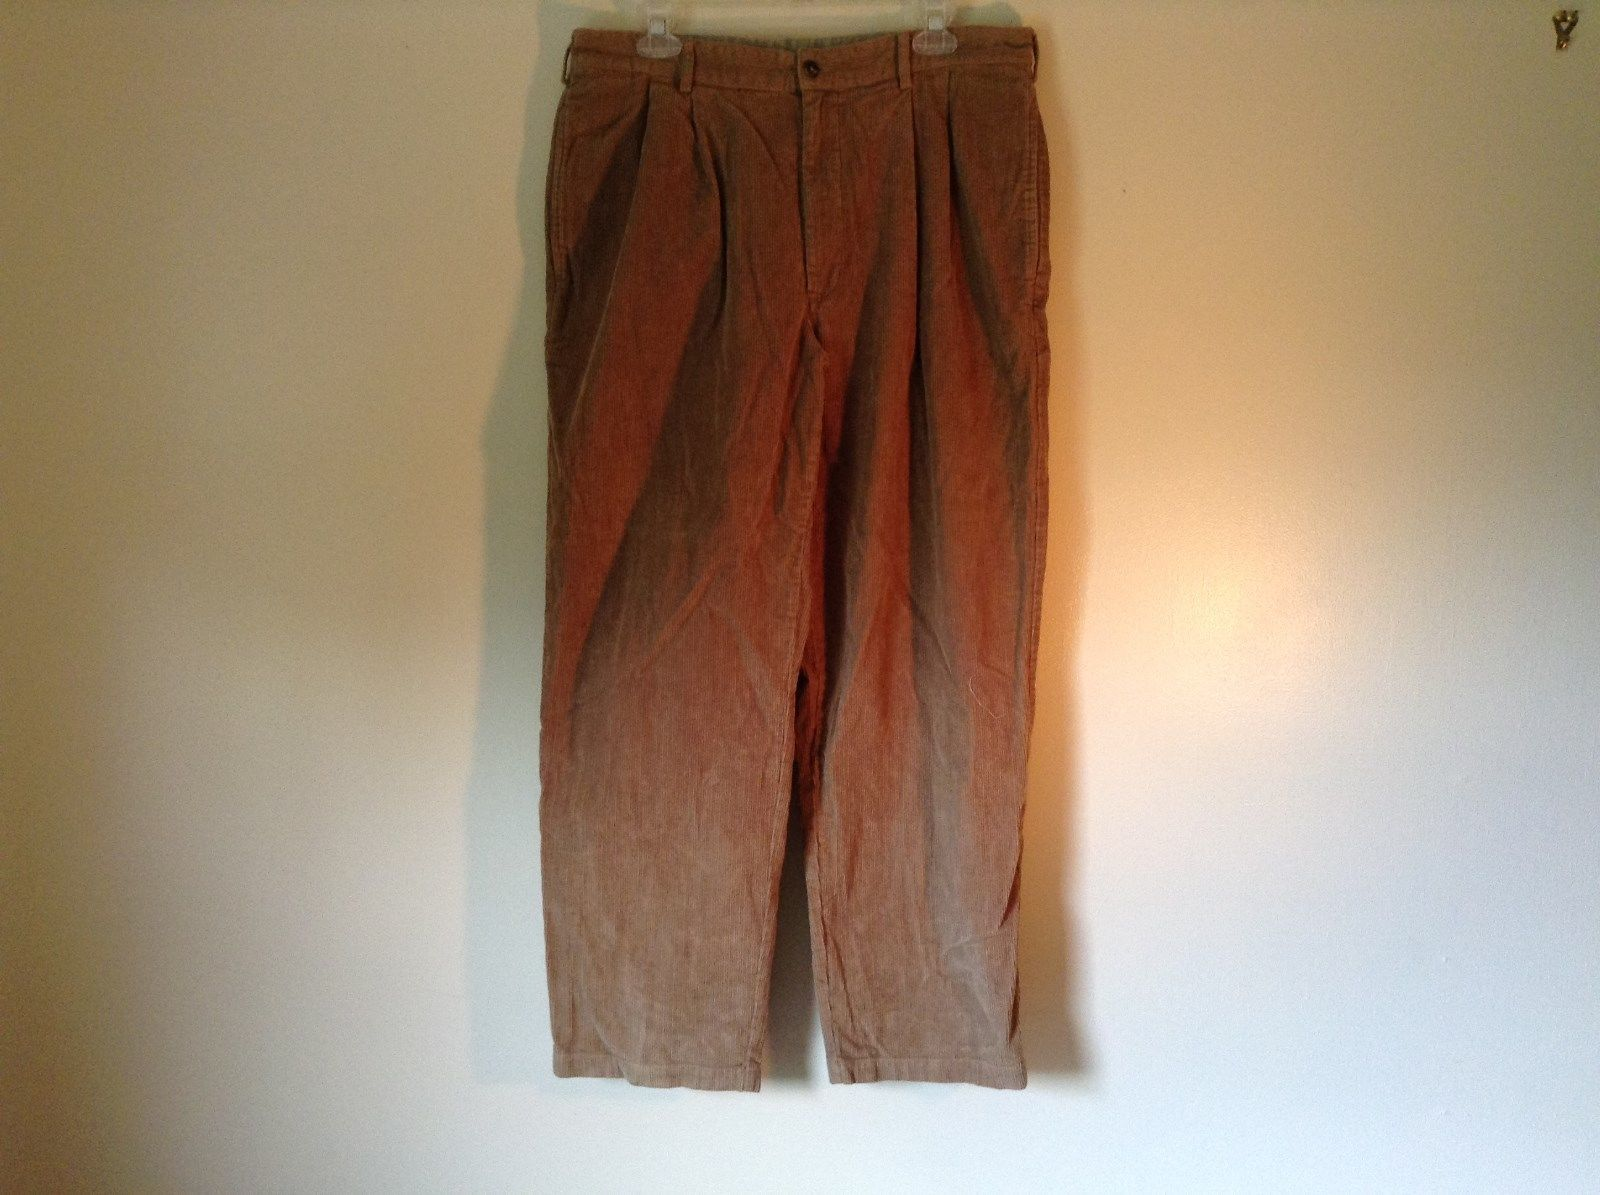 Brown Corduroy L L Bean Casual Pleated Pants Size 36 Front and Back Pockets